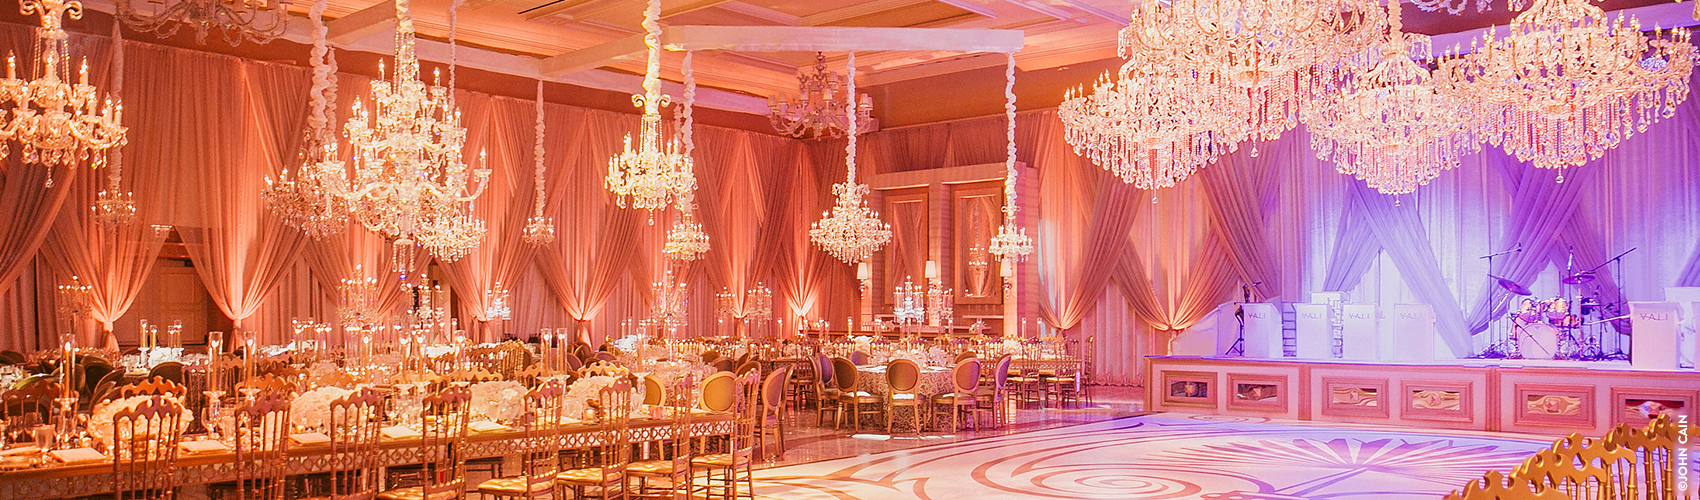 The Venetian Ballroom decorated for a special event at The Breakers